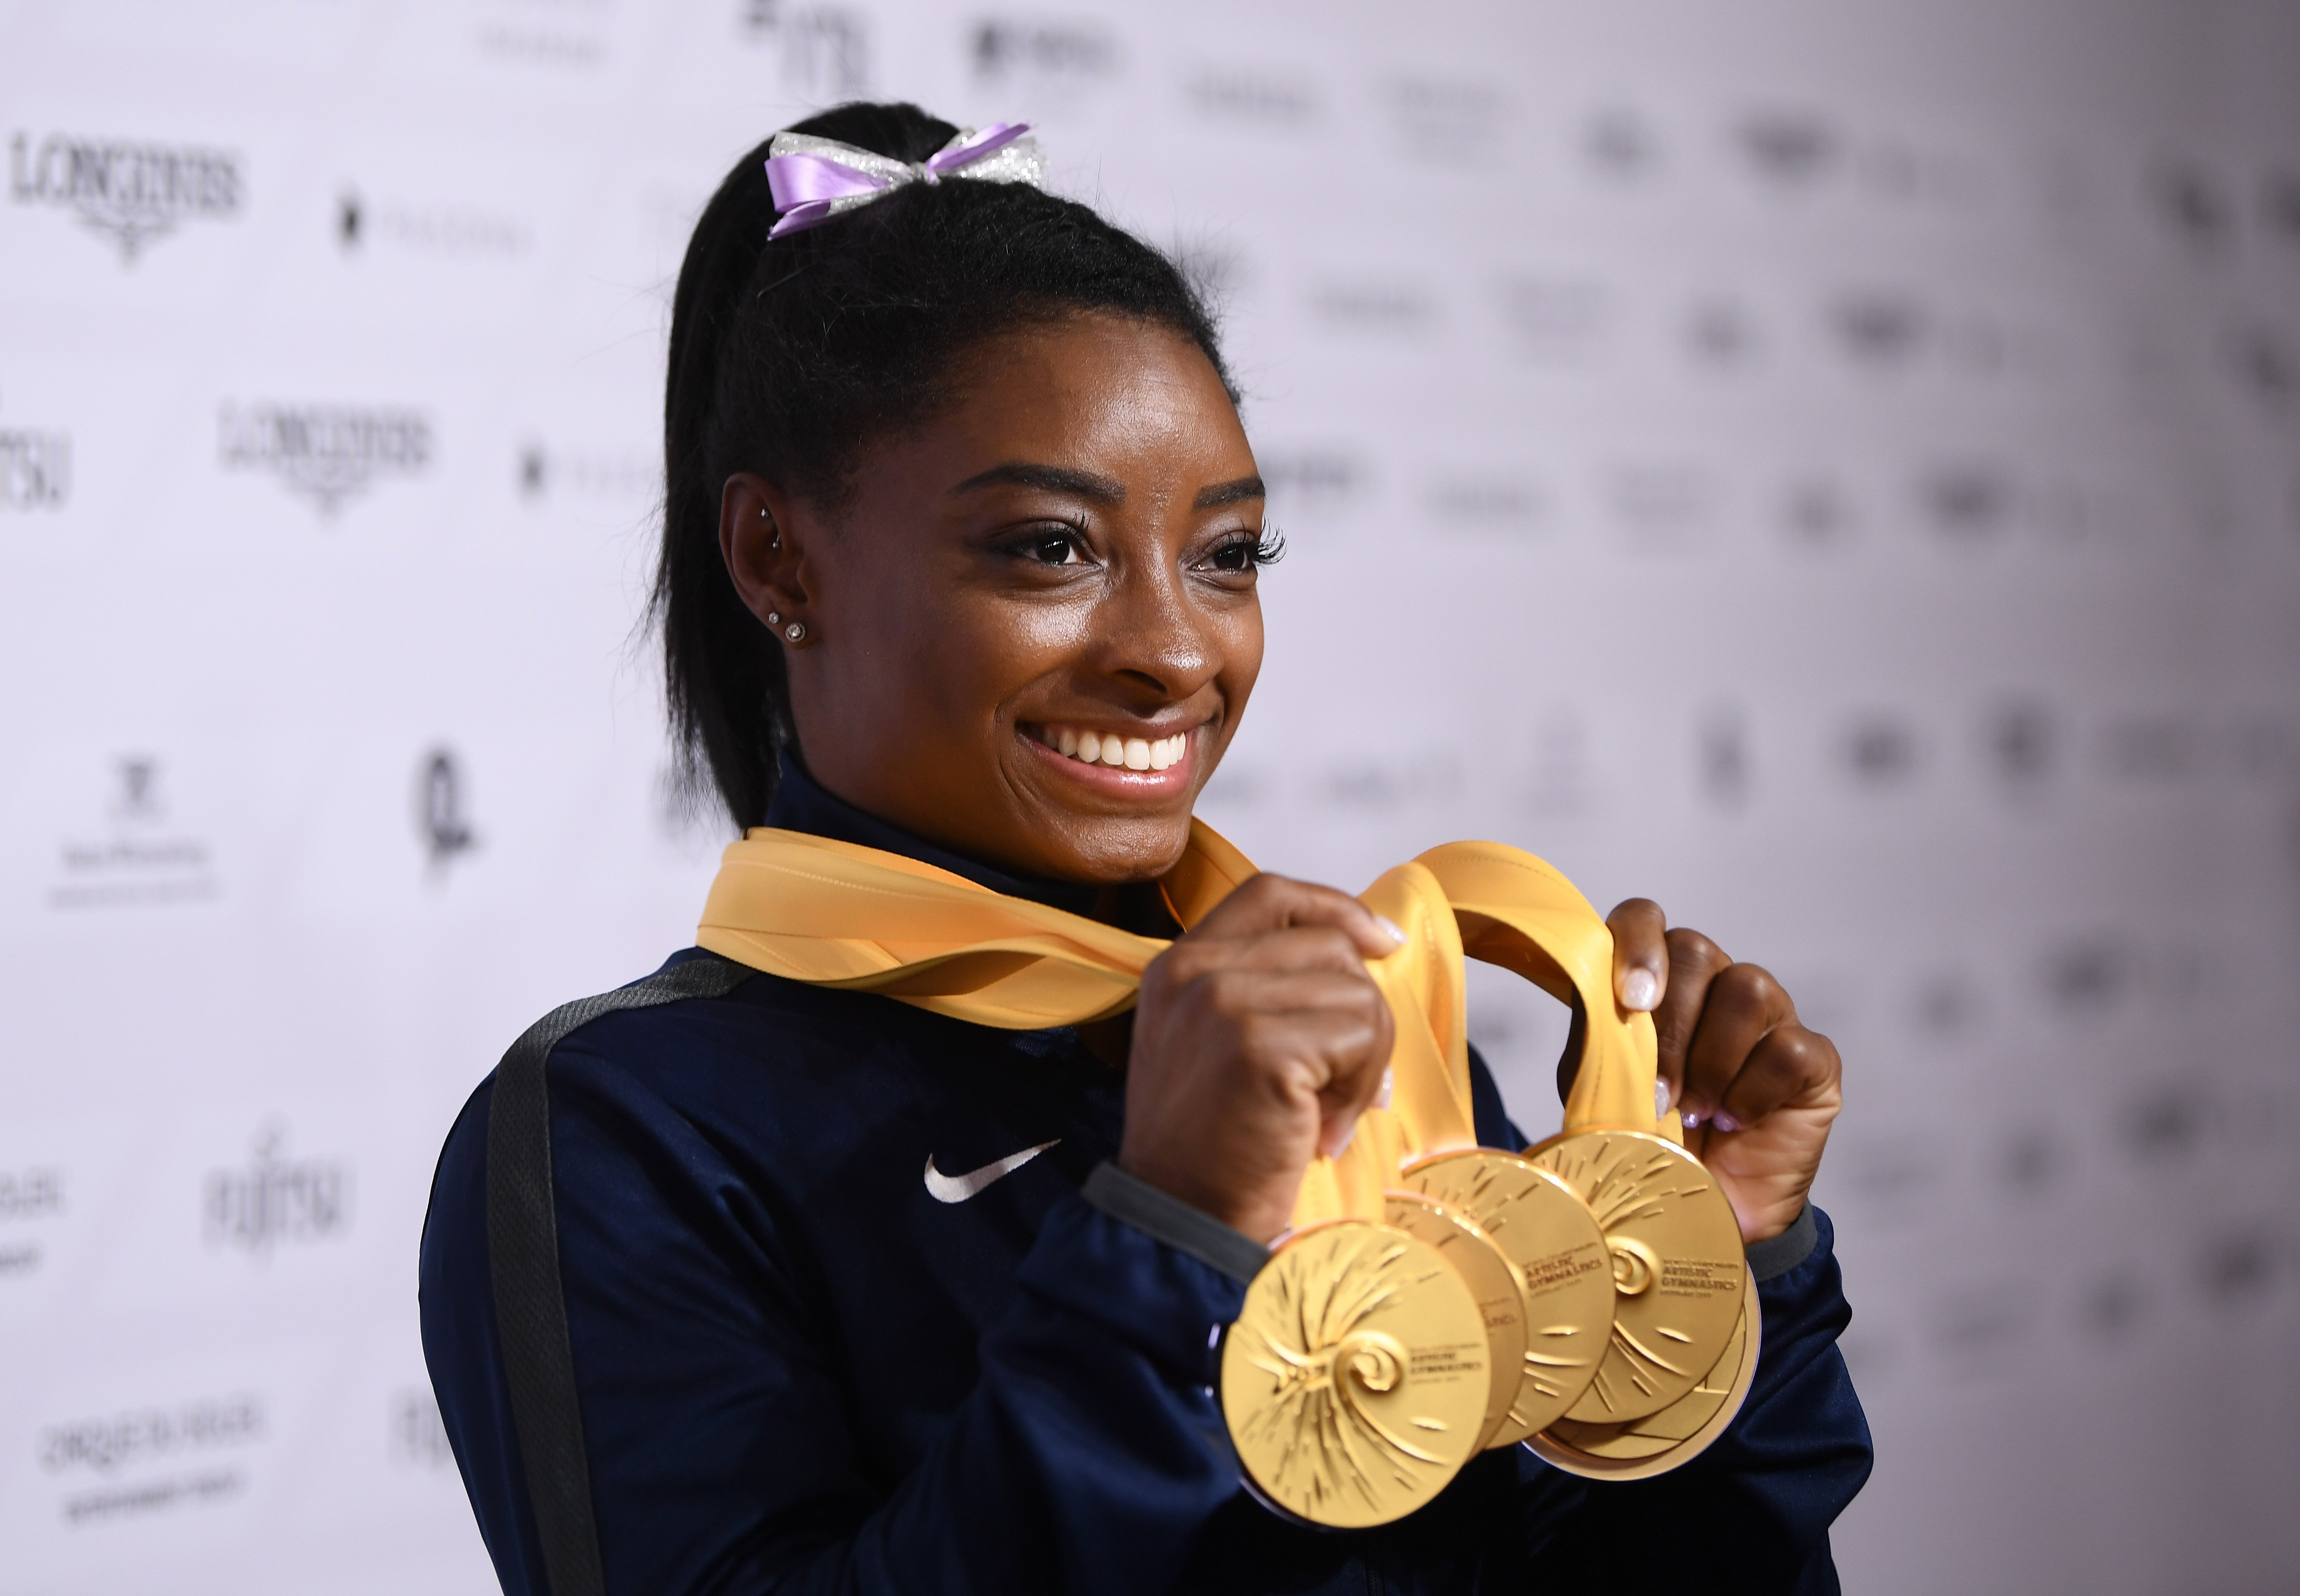 Simone Biles poses after the Apparatus Finals on Day 10 of the FIG Artistic Gymnastics World Championships at Hanns Martin Schleyer Hall on October 13, 2019 in Stuttgart, Germany. | Source: Getty Images